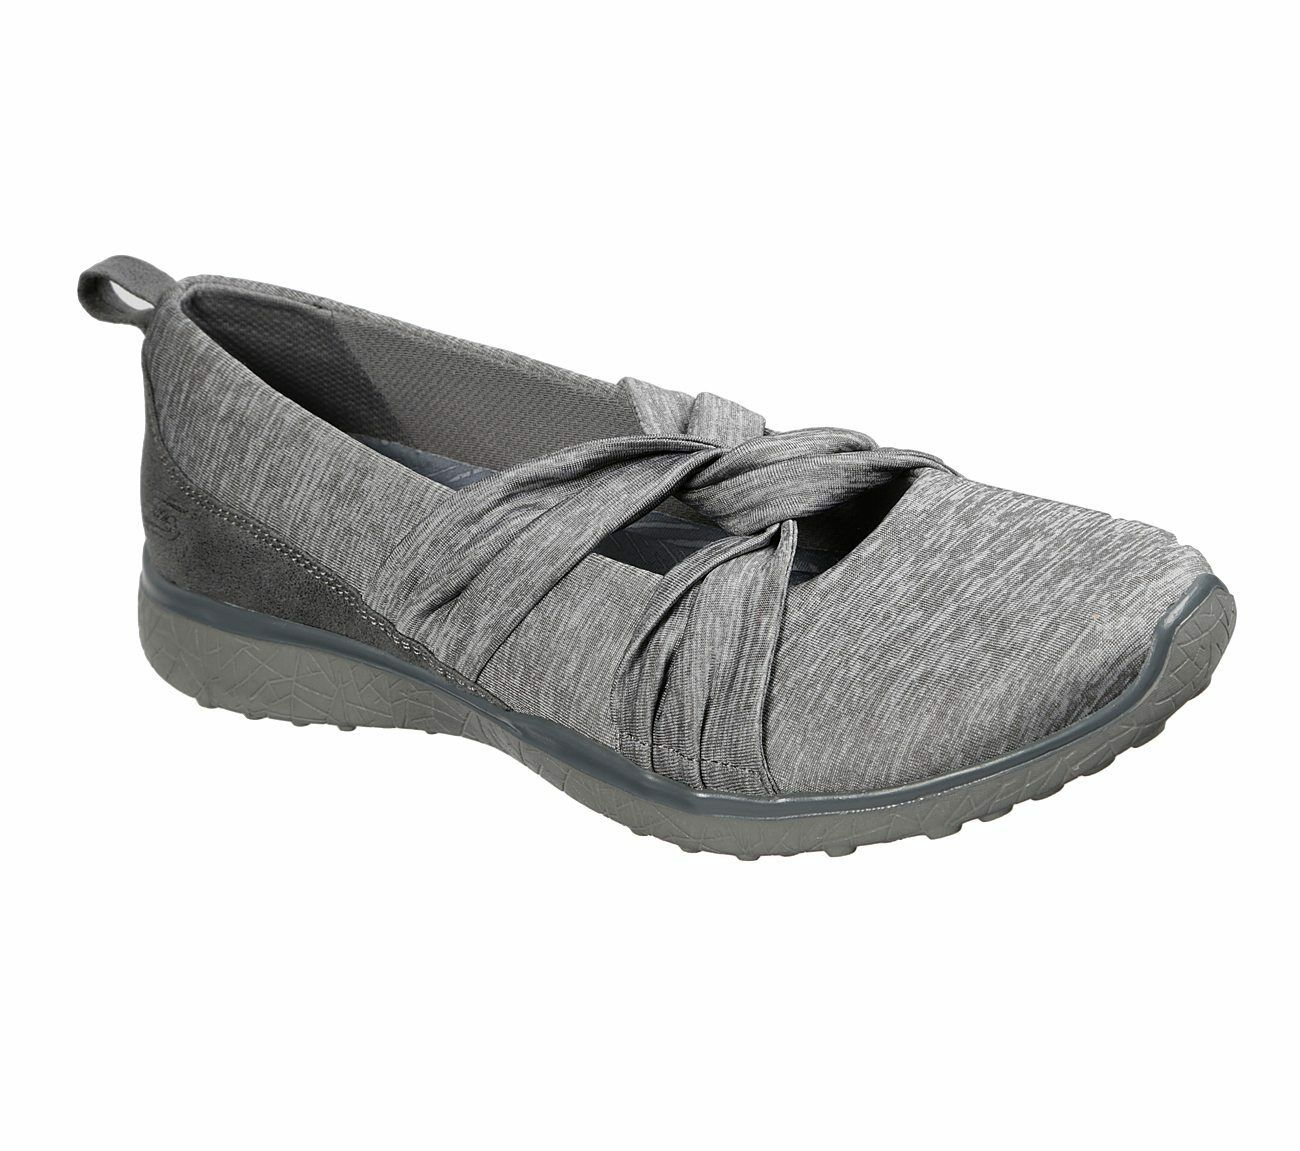 NEU SKECHERS Damen Sneakers Turnschuhe Mary Jane MICROBURST KNOT CONCERNED Grau